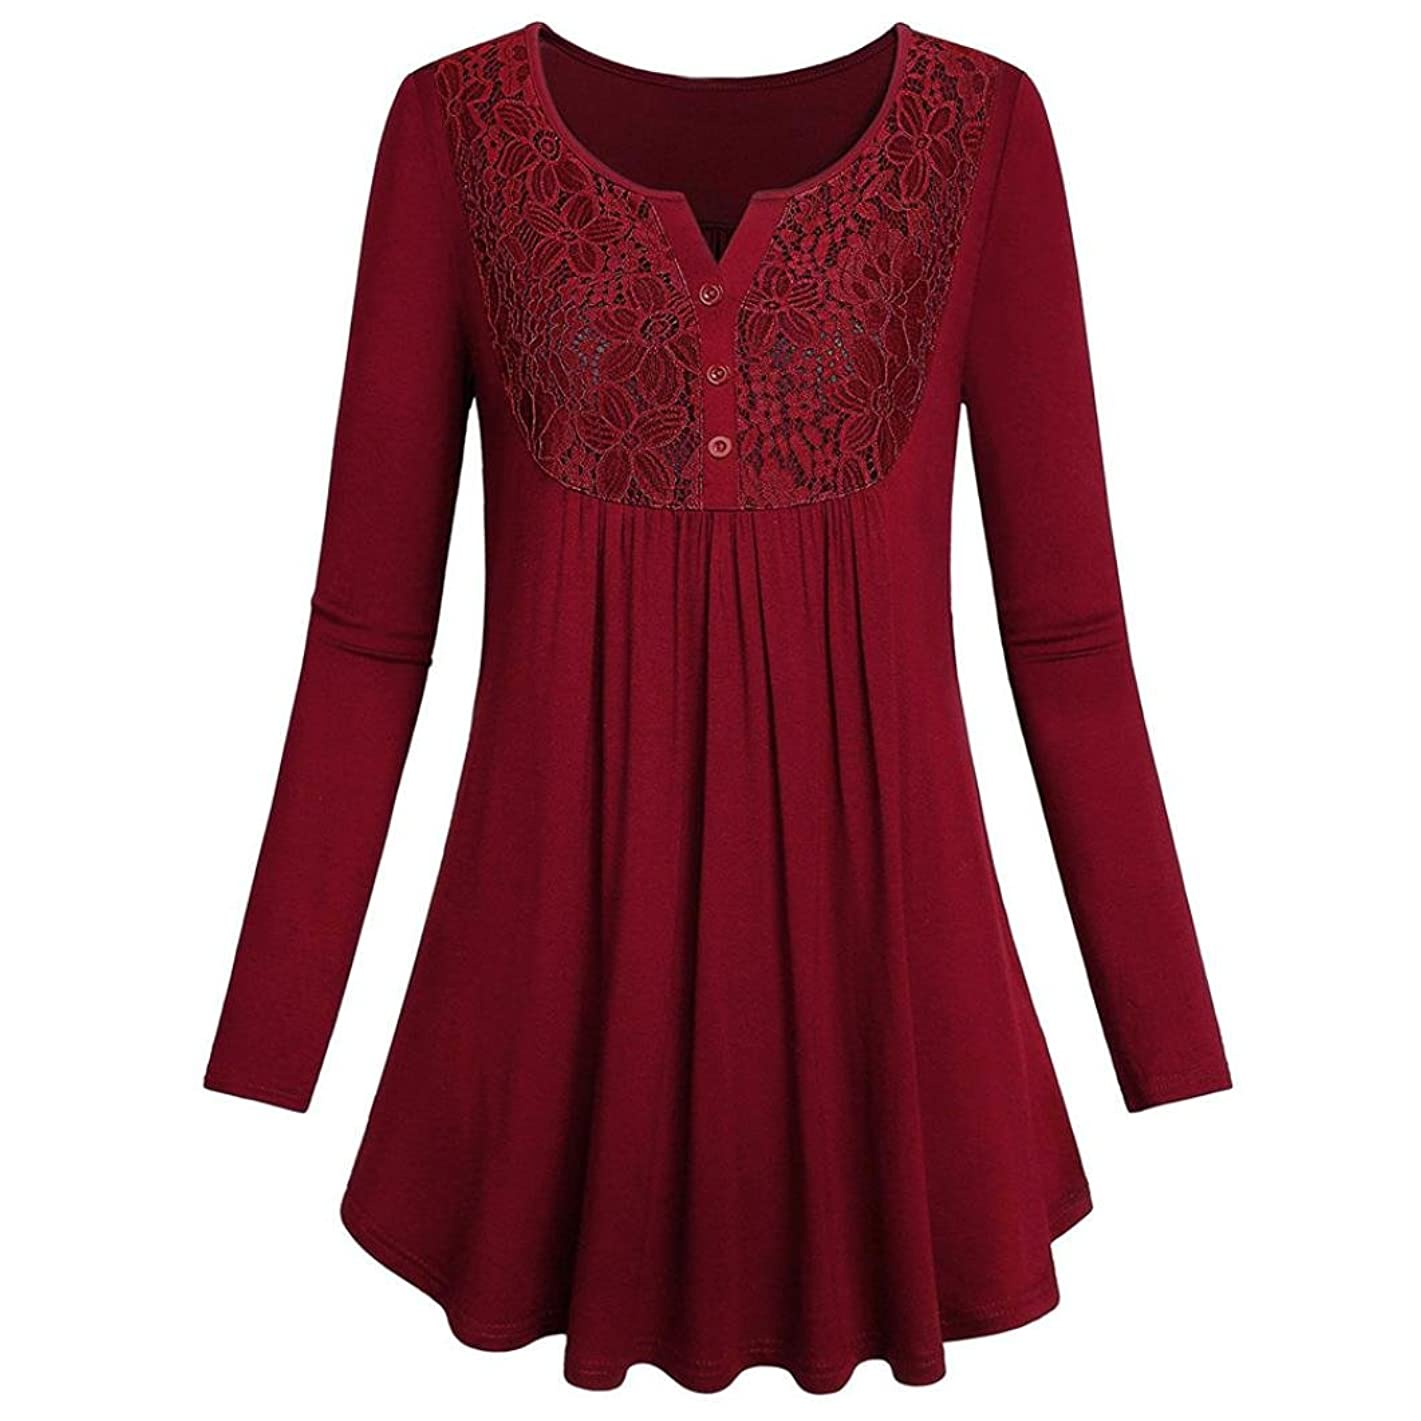 iQKA Women Long Sleeve Solid Lace Splice Henley Shirt Button V-Neck Top Casual Blouse